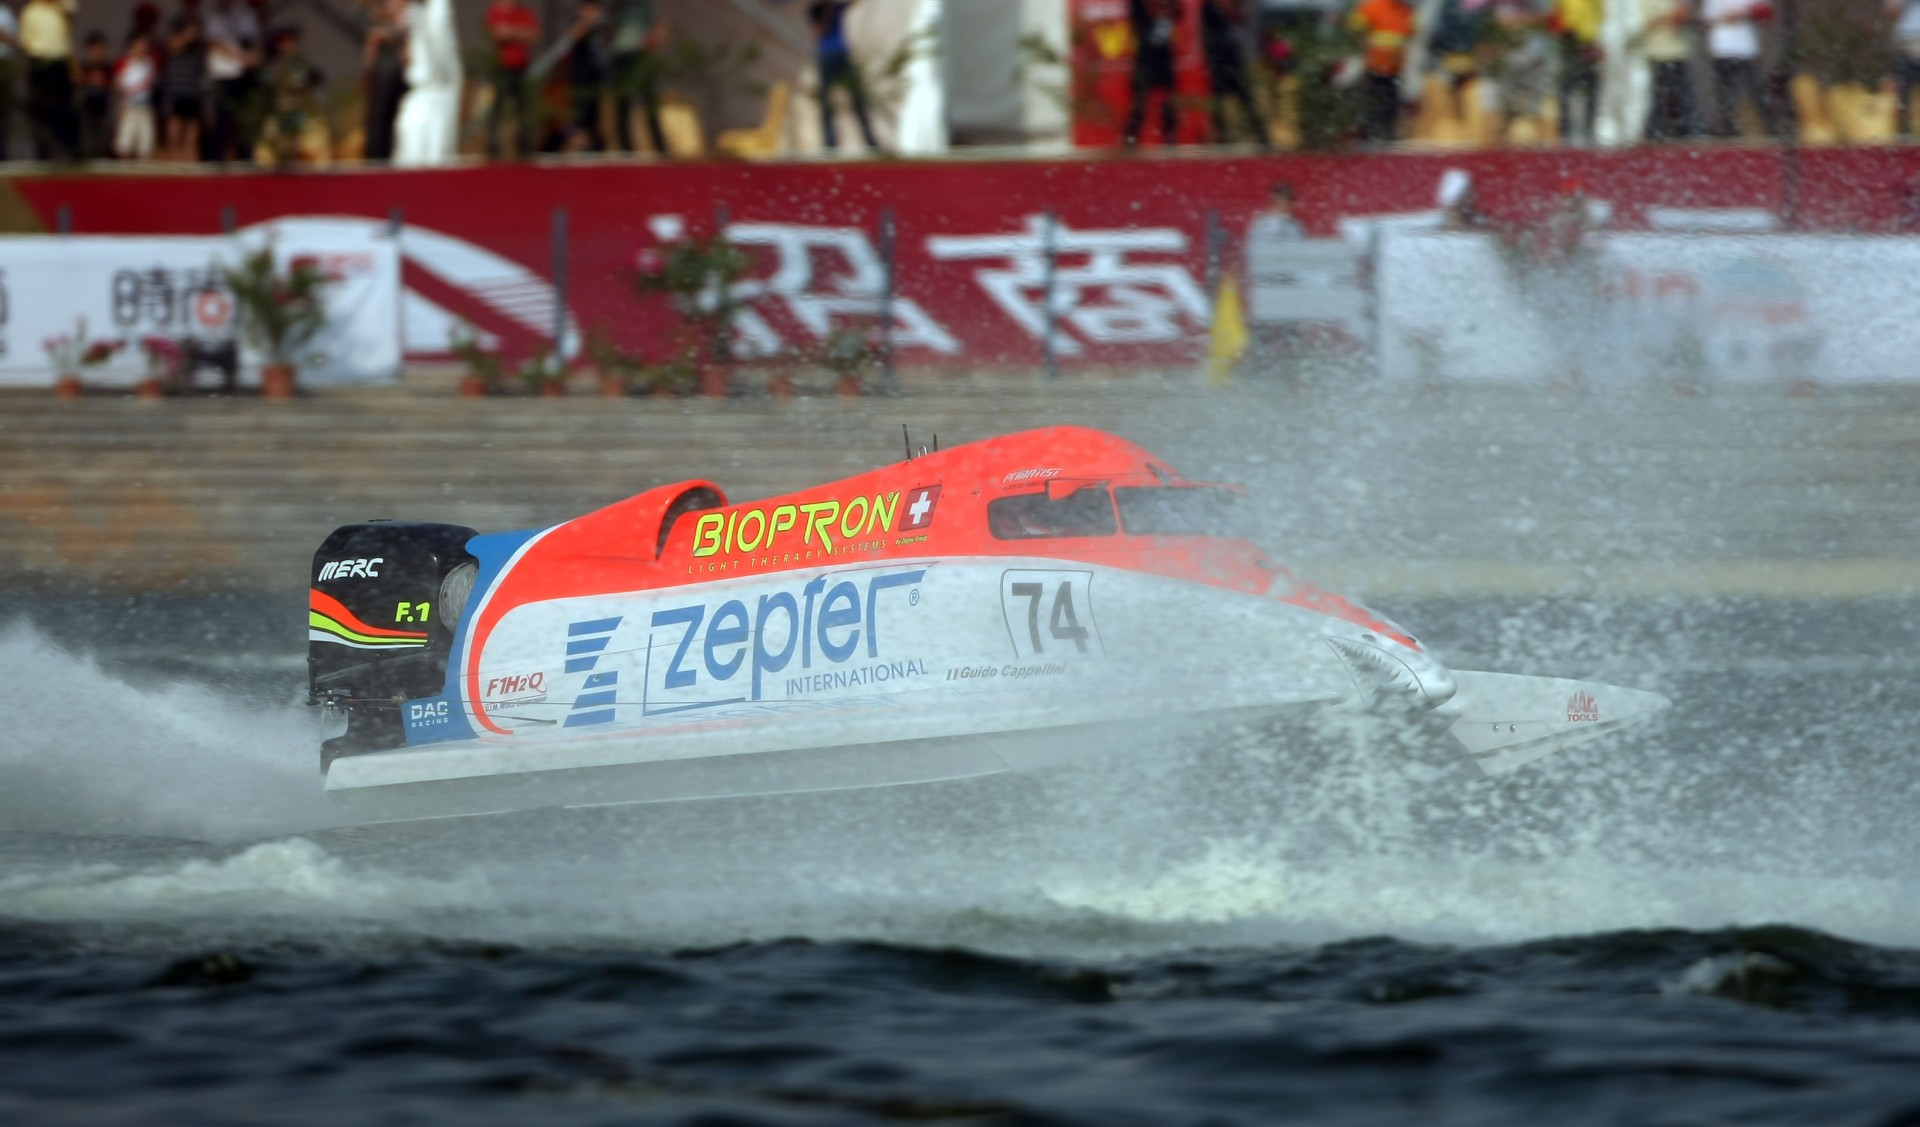 GP OF CHINA SHENZHEN-171009-Guido Cappellini of Italy of the Zepter Team in action during the race of the UIM F1 Powerboat Grand Prix of China, at the Shenzhen Bay Inner Lake, Shenzhen, China. The second race in China is the 5th leg of the season, October 17-18, 2009. Picture by Paul Lakatos/Idea Marketing.